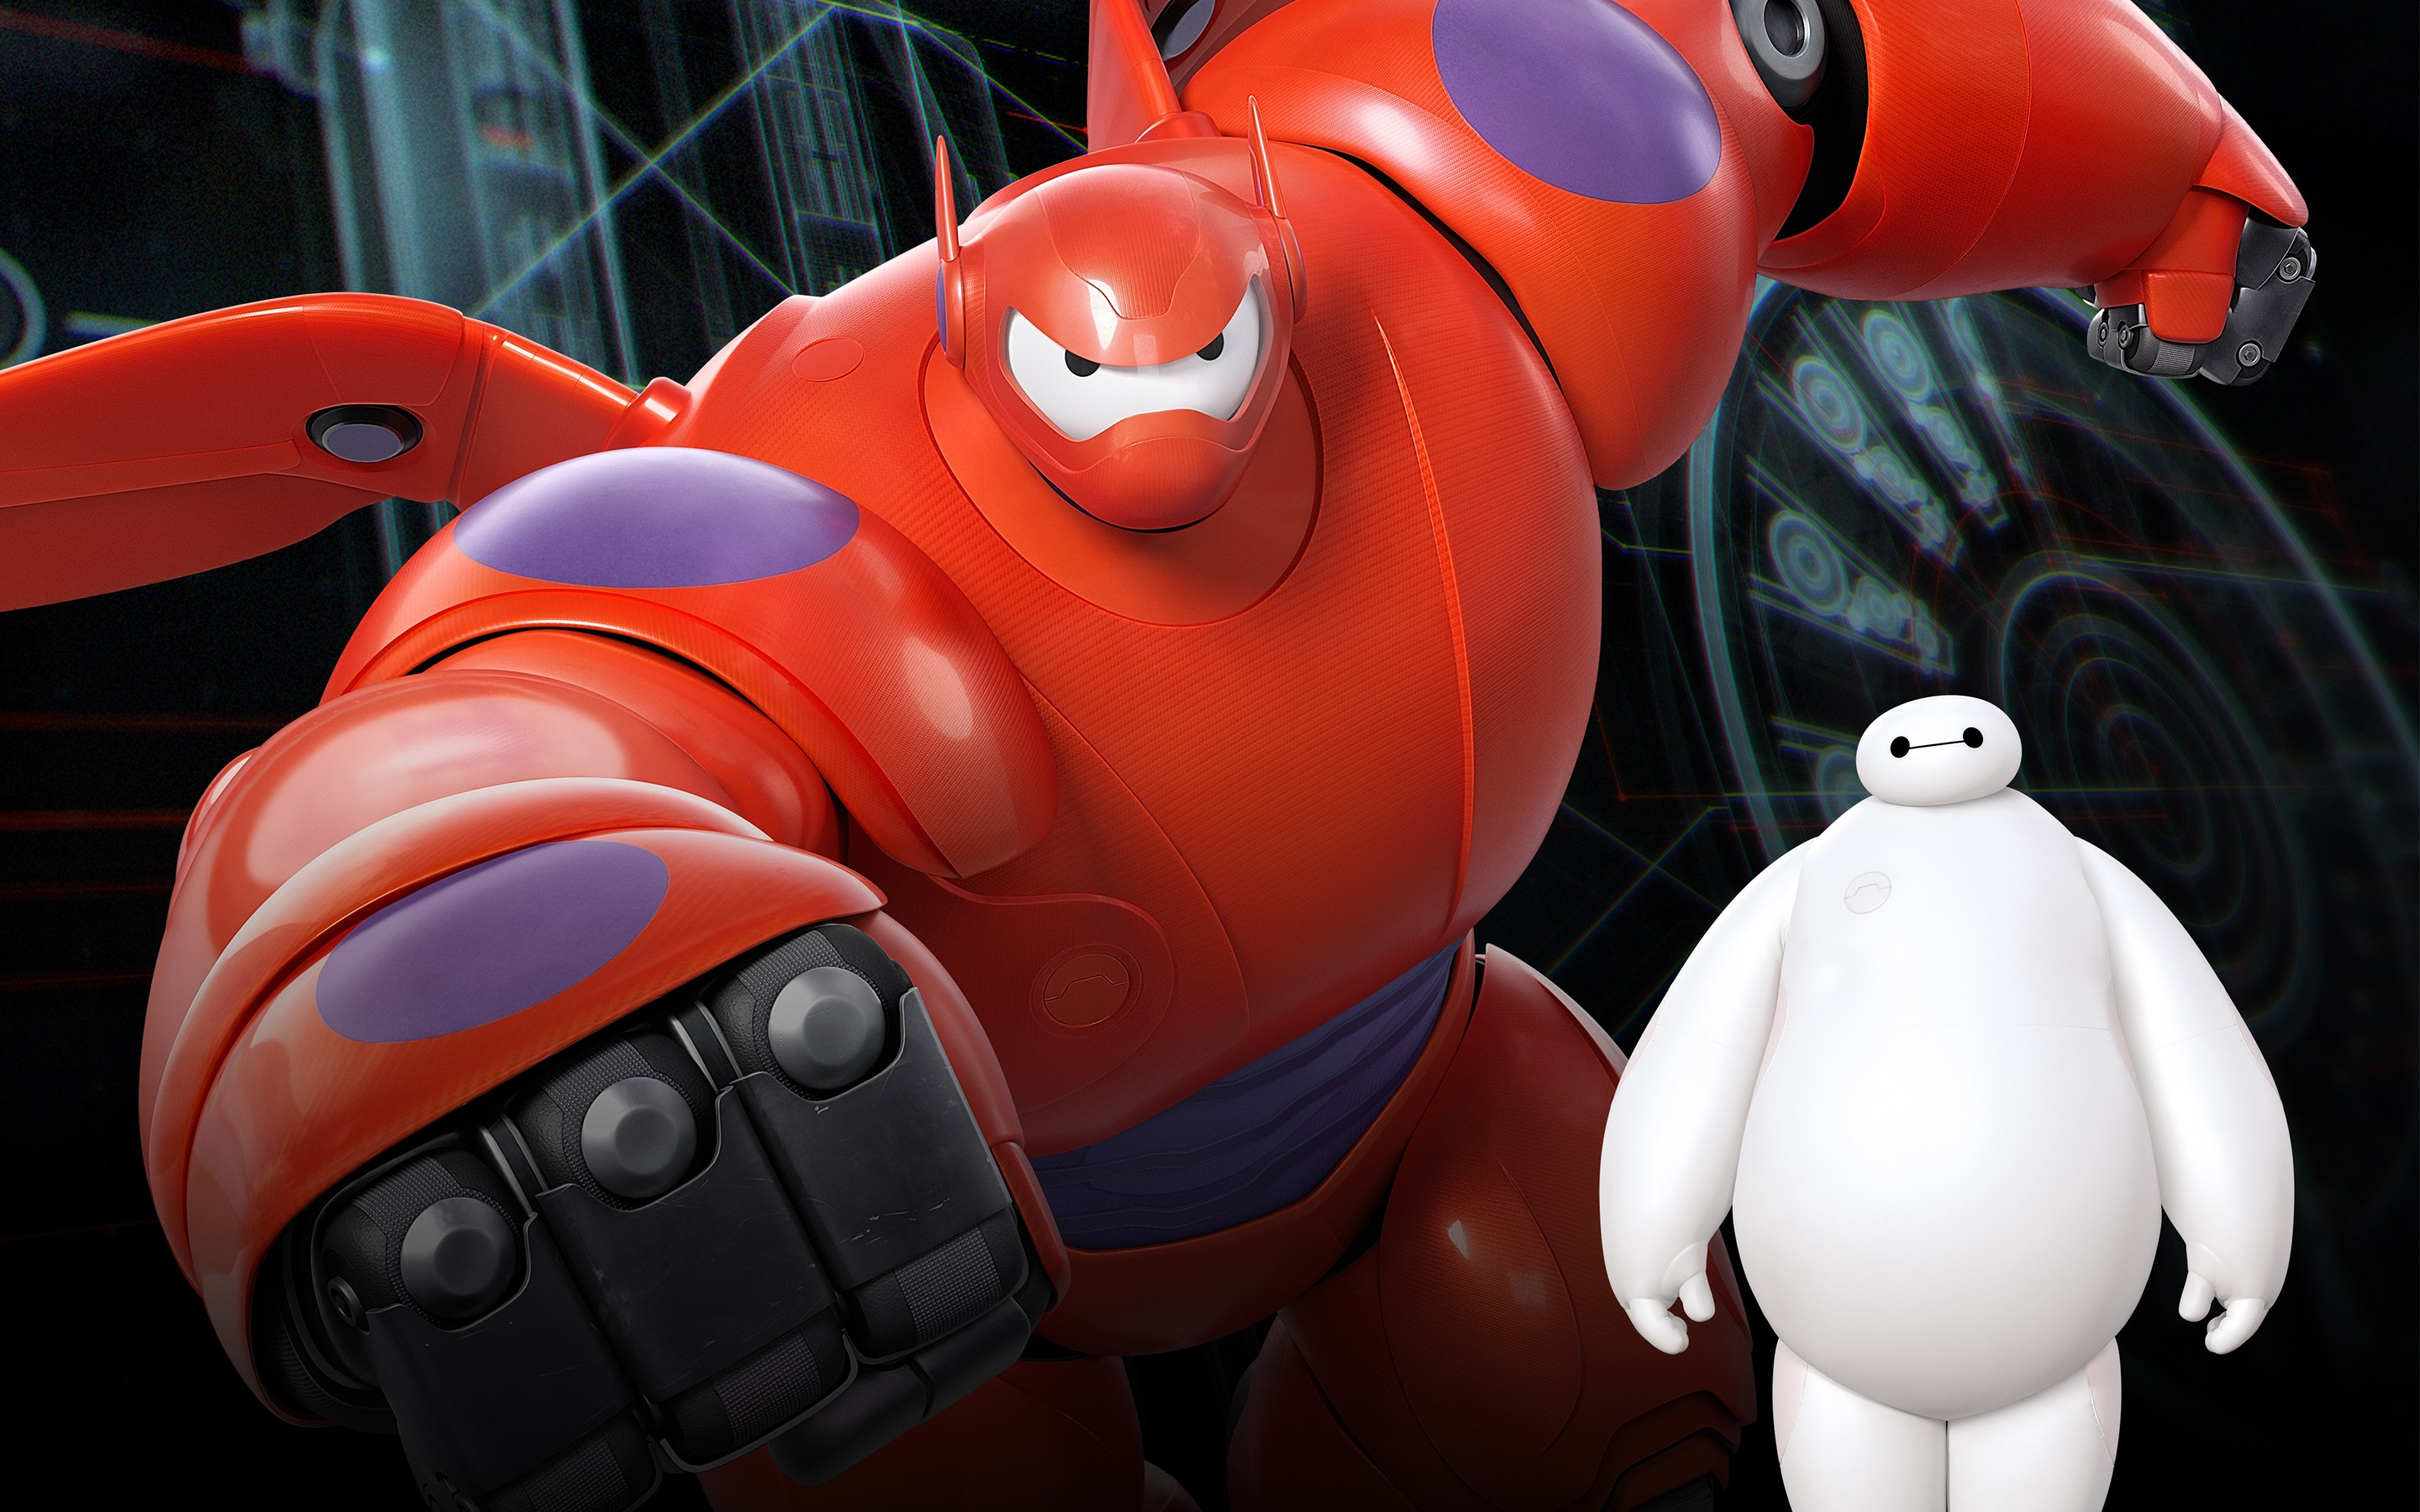 Baymax In Big Hero 6 Movie Hd Movies 4k Wallpapers Images Backgrounds Photos And Pictures